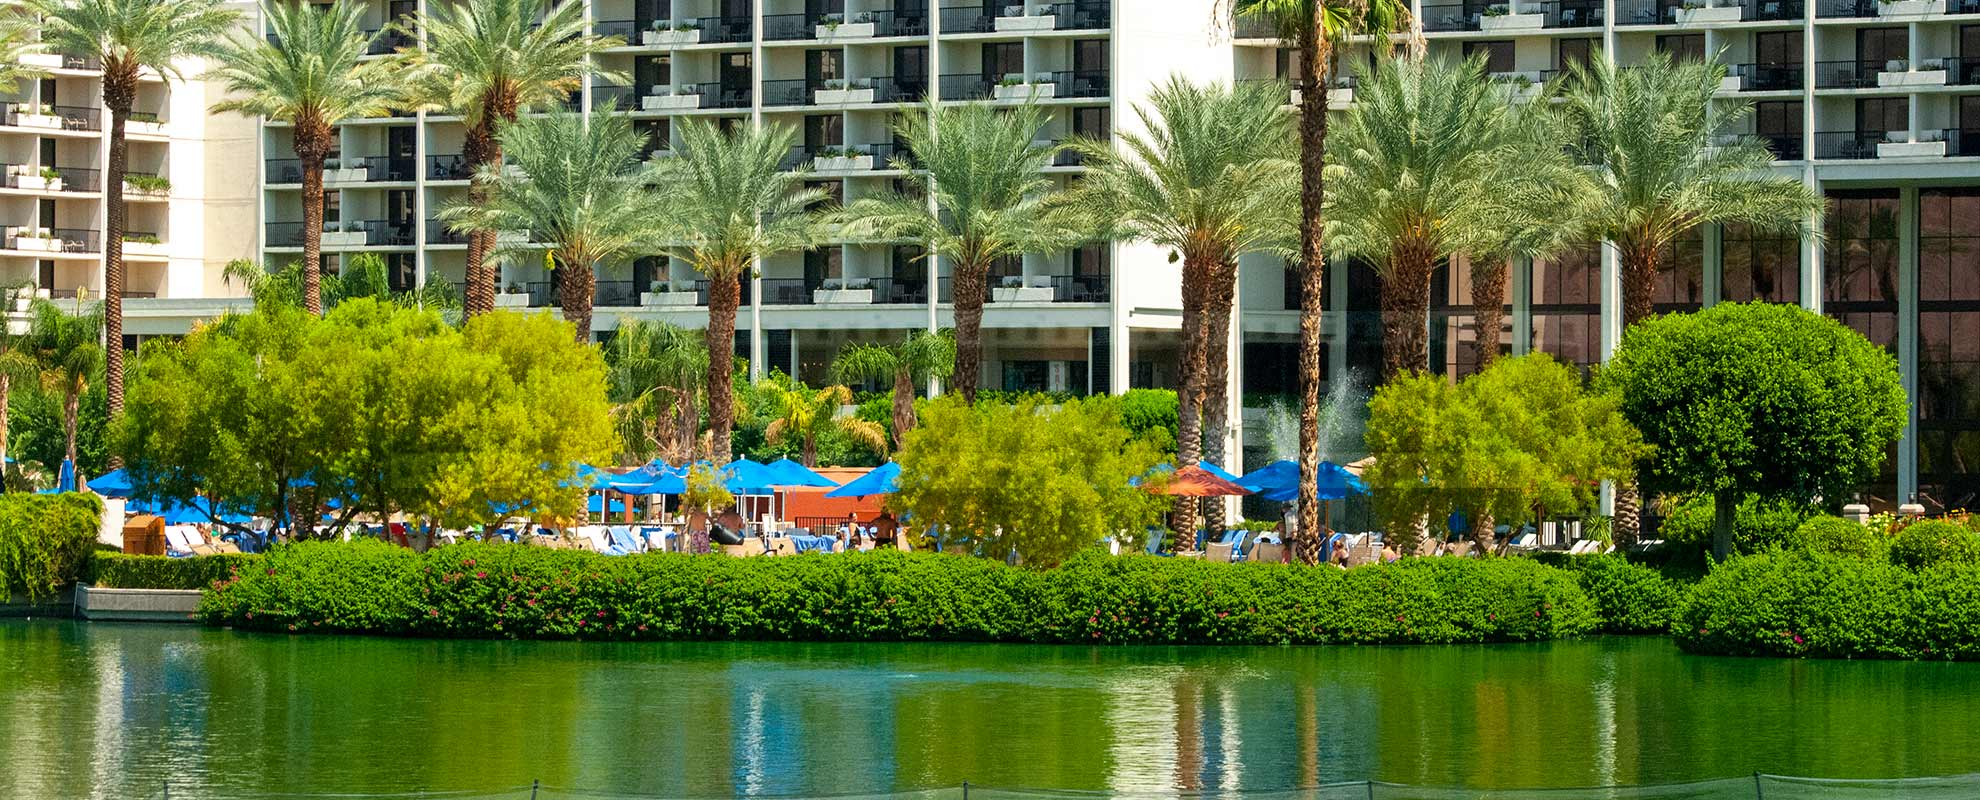 Bright Blue Umbrellas and Tall Palm Trees, beautiful grounds at JW Marriott